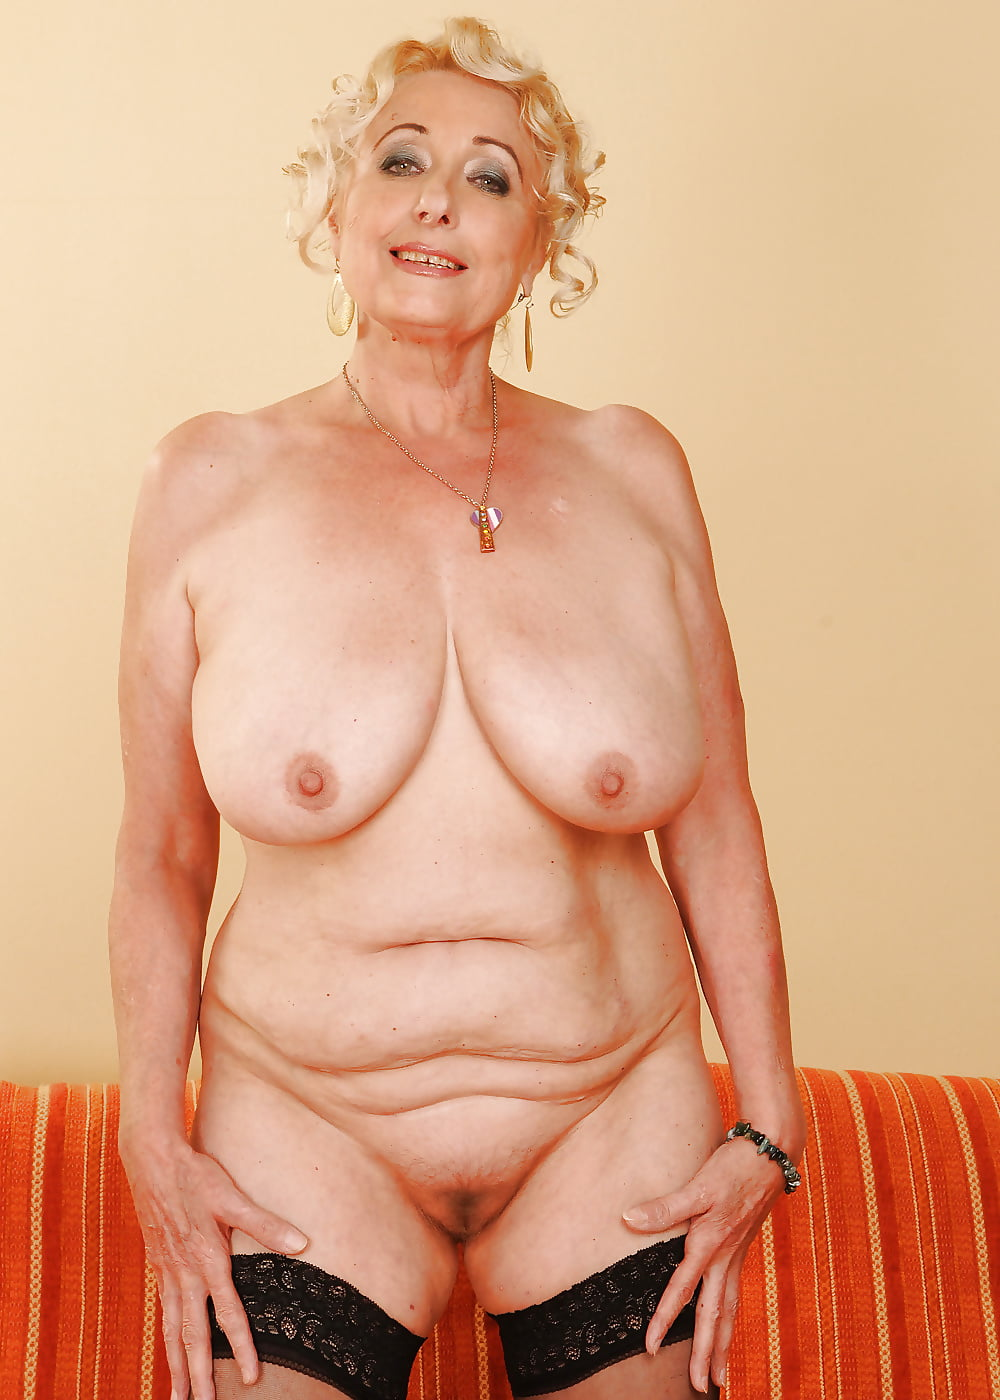 old-naked-women-pictures-cam